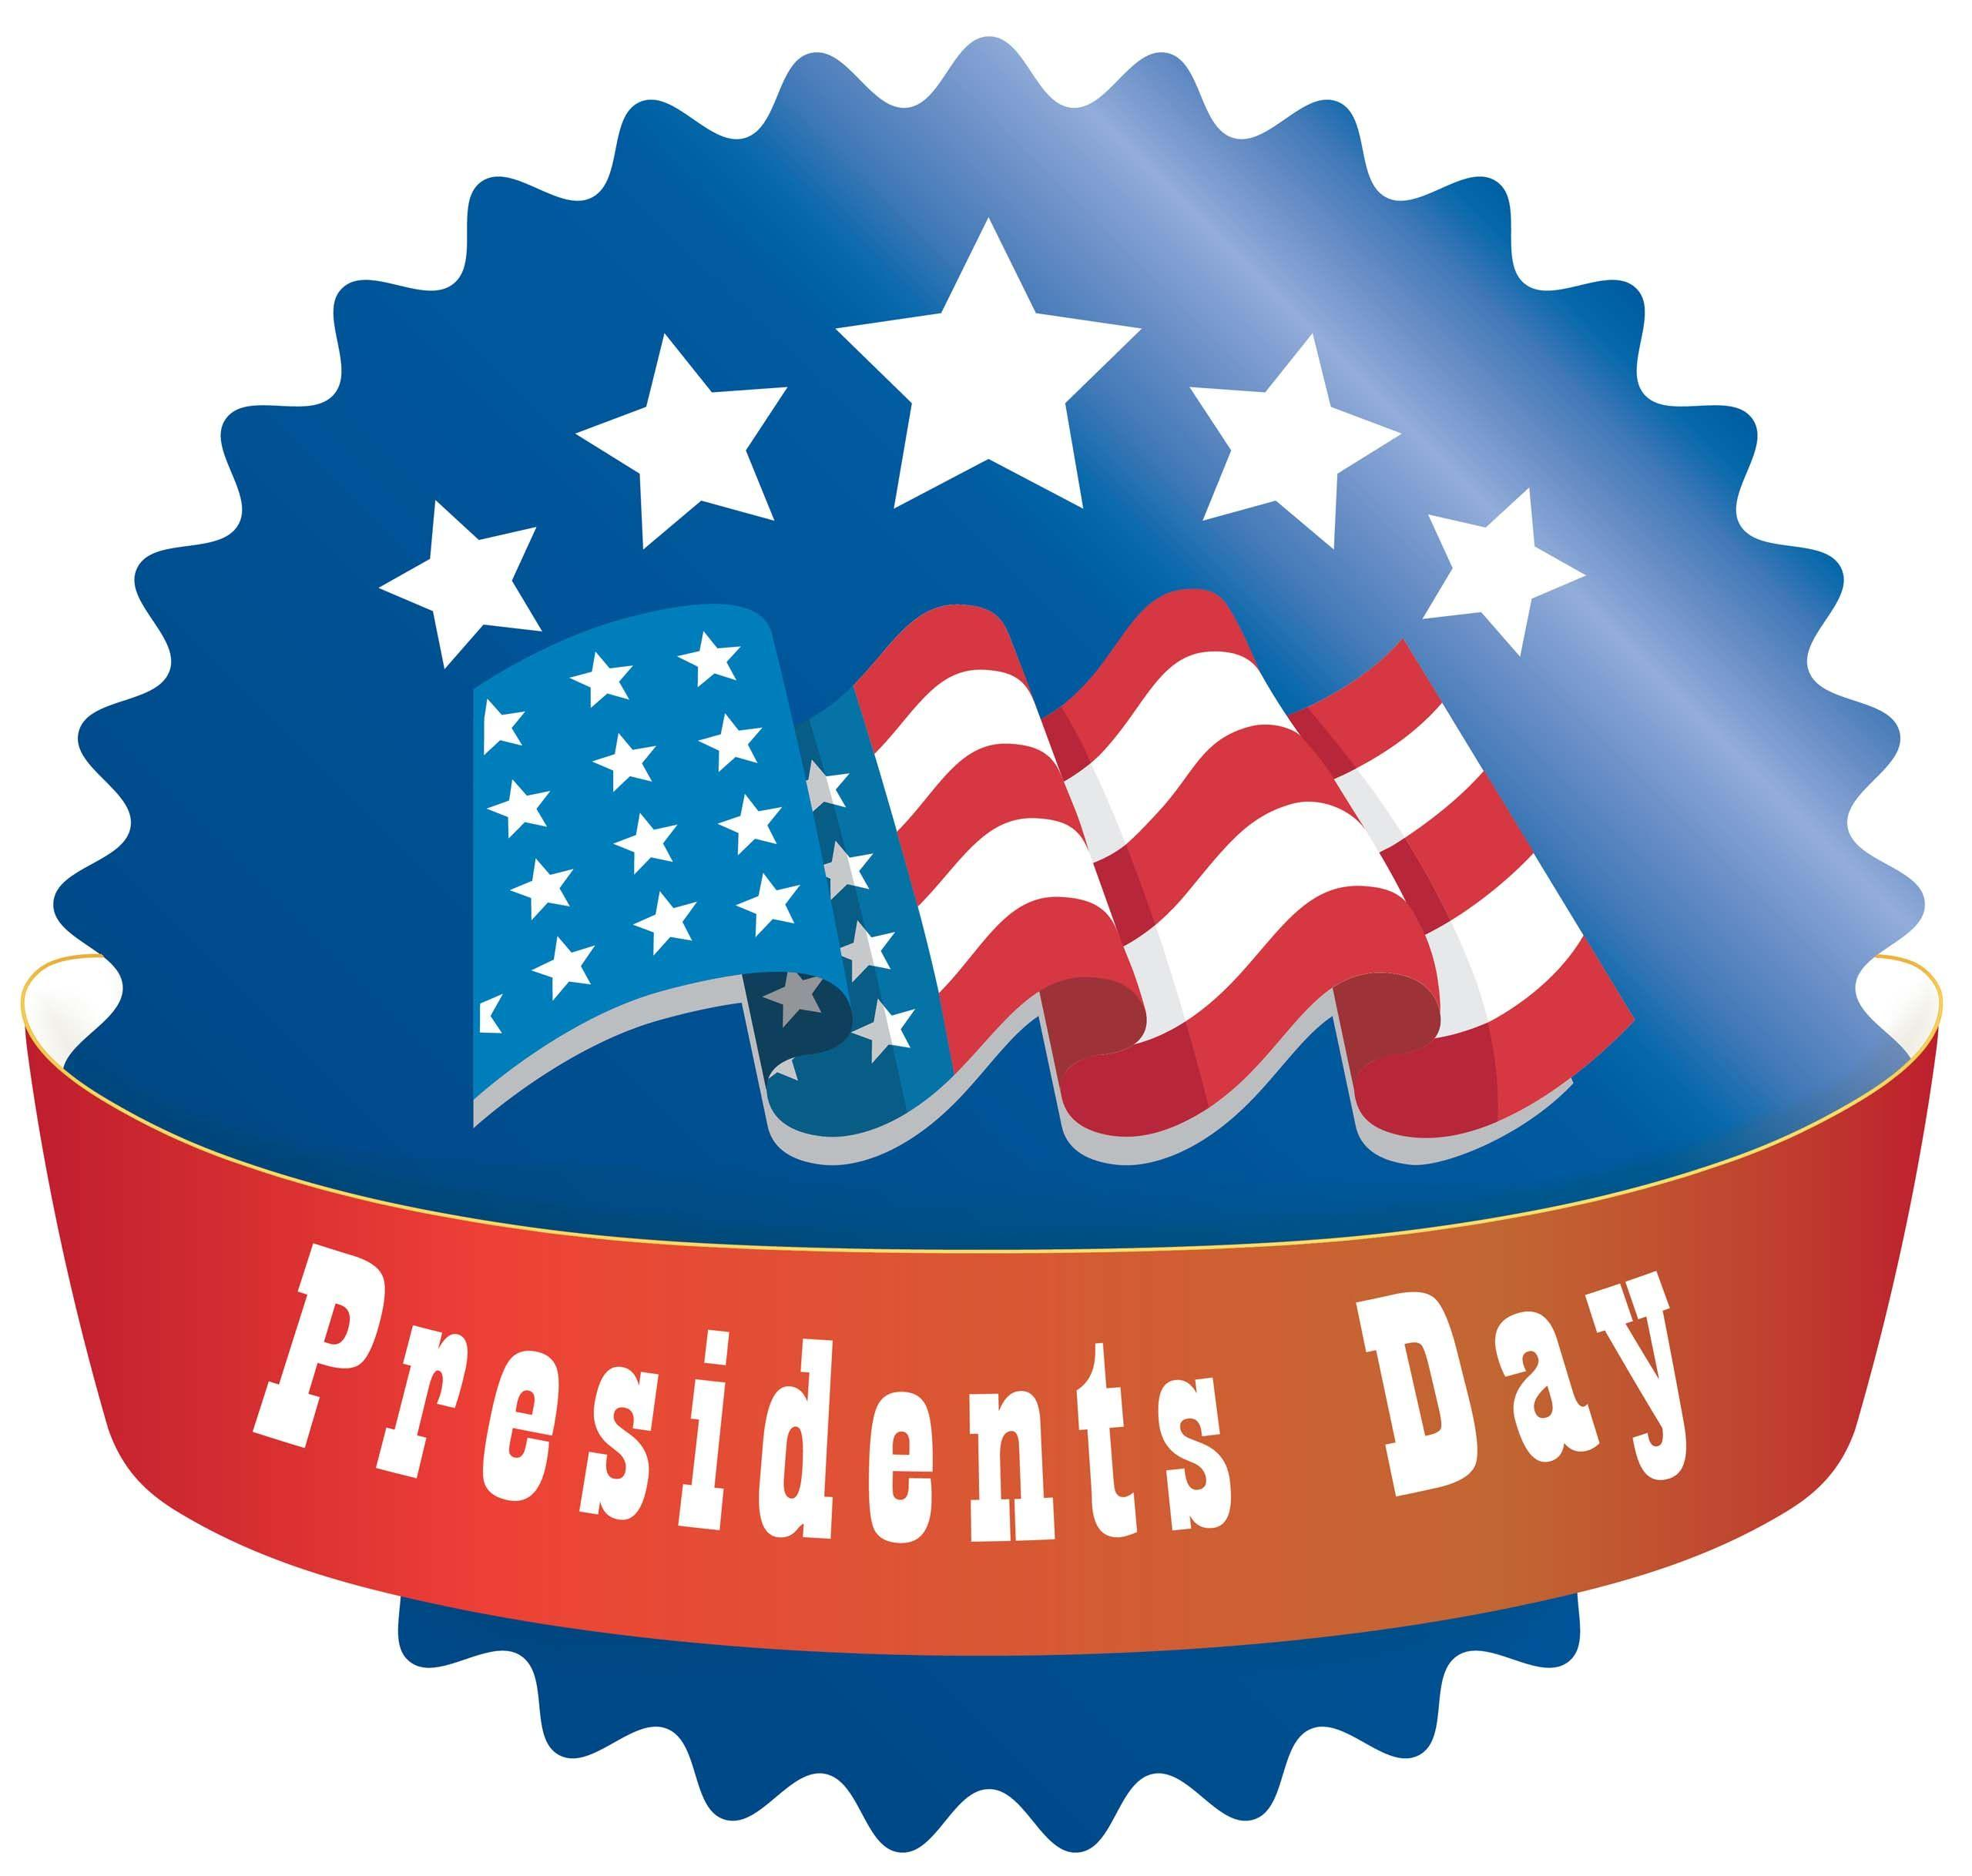 Presidents Day Wallpapers HD Download